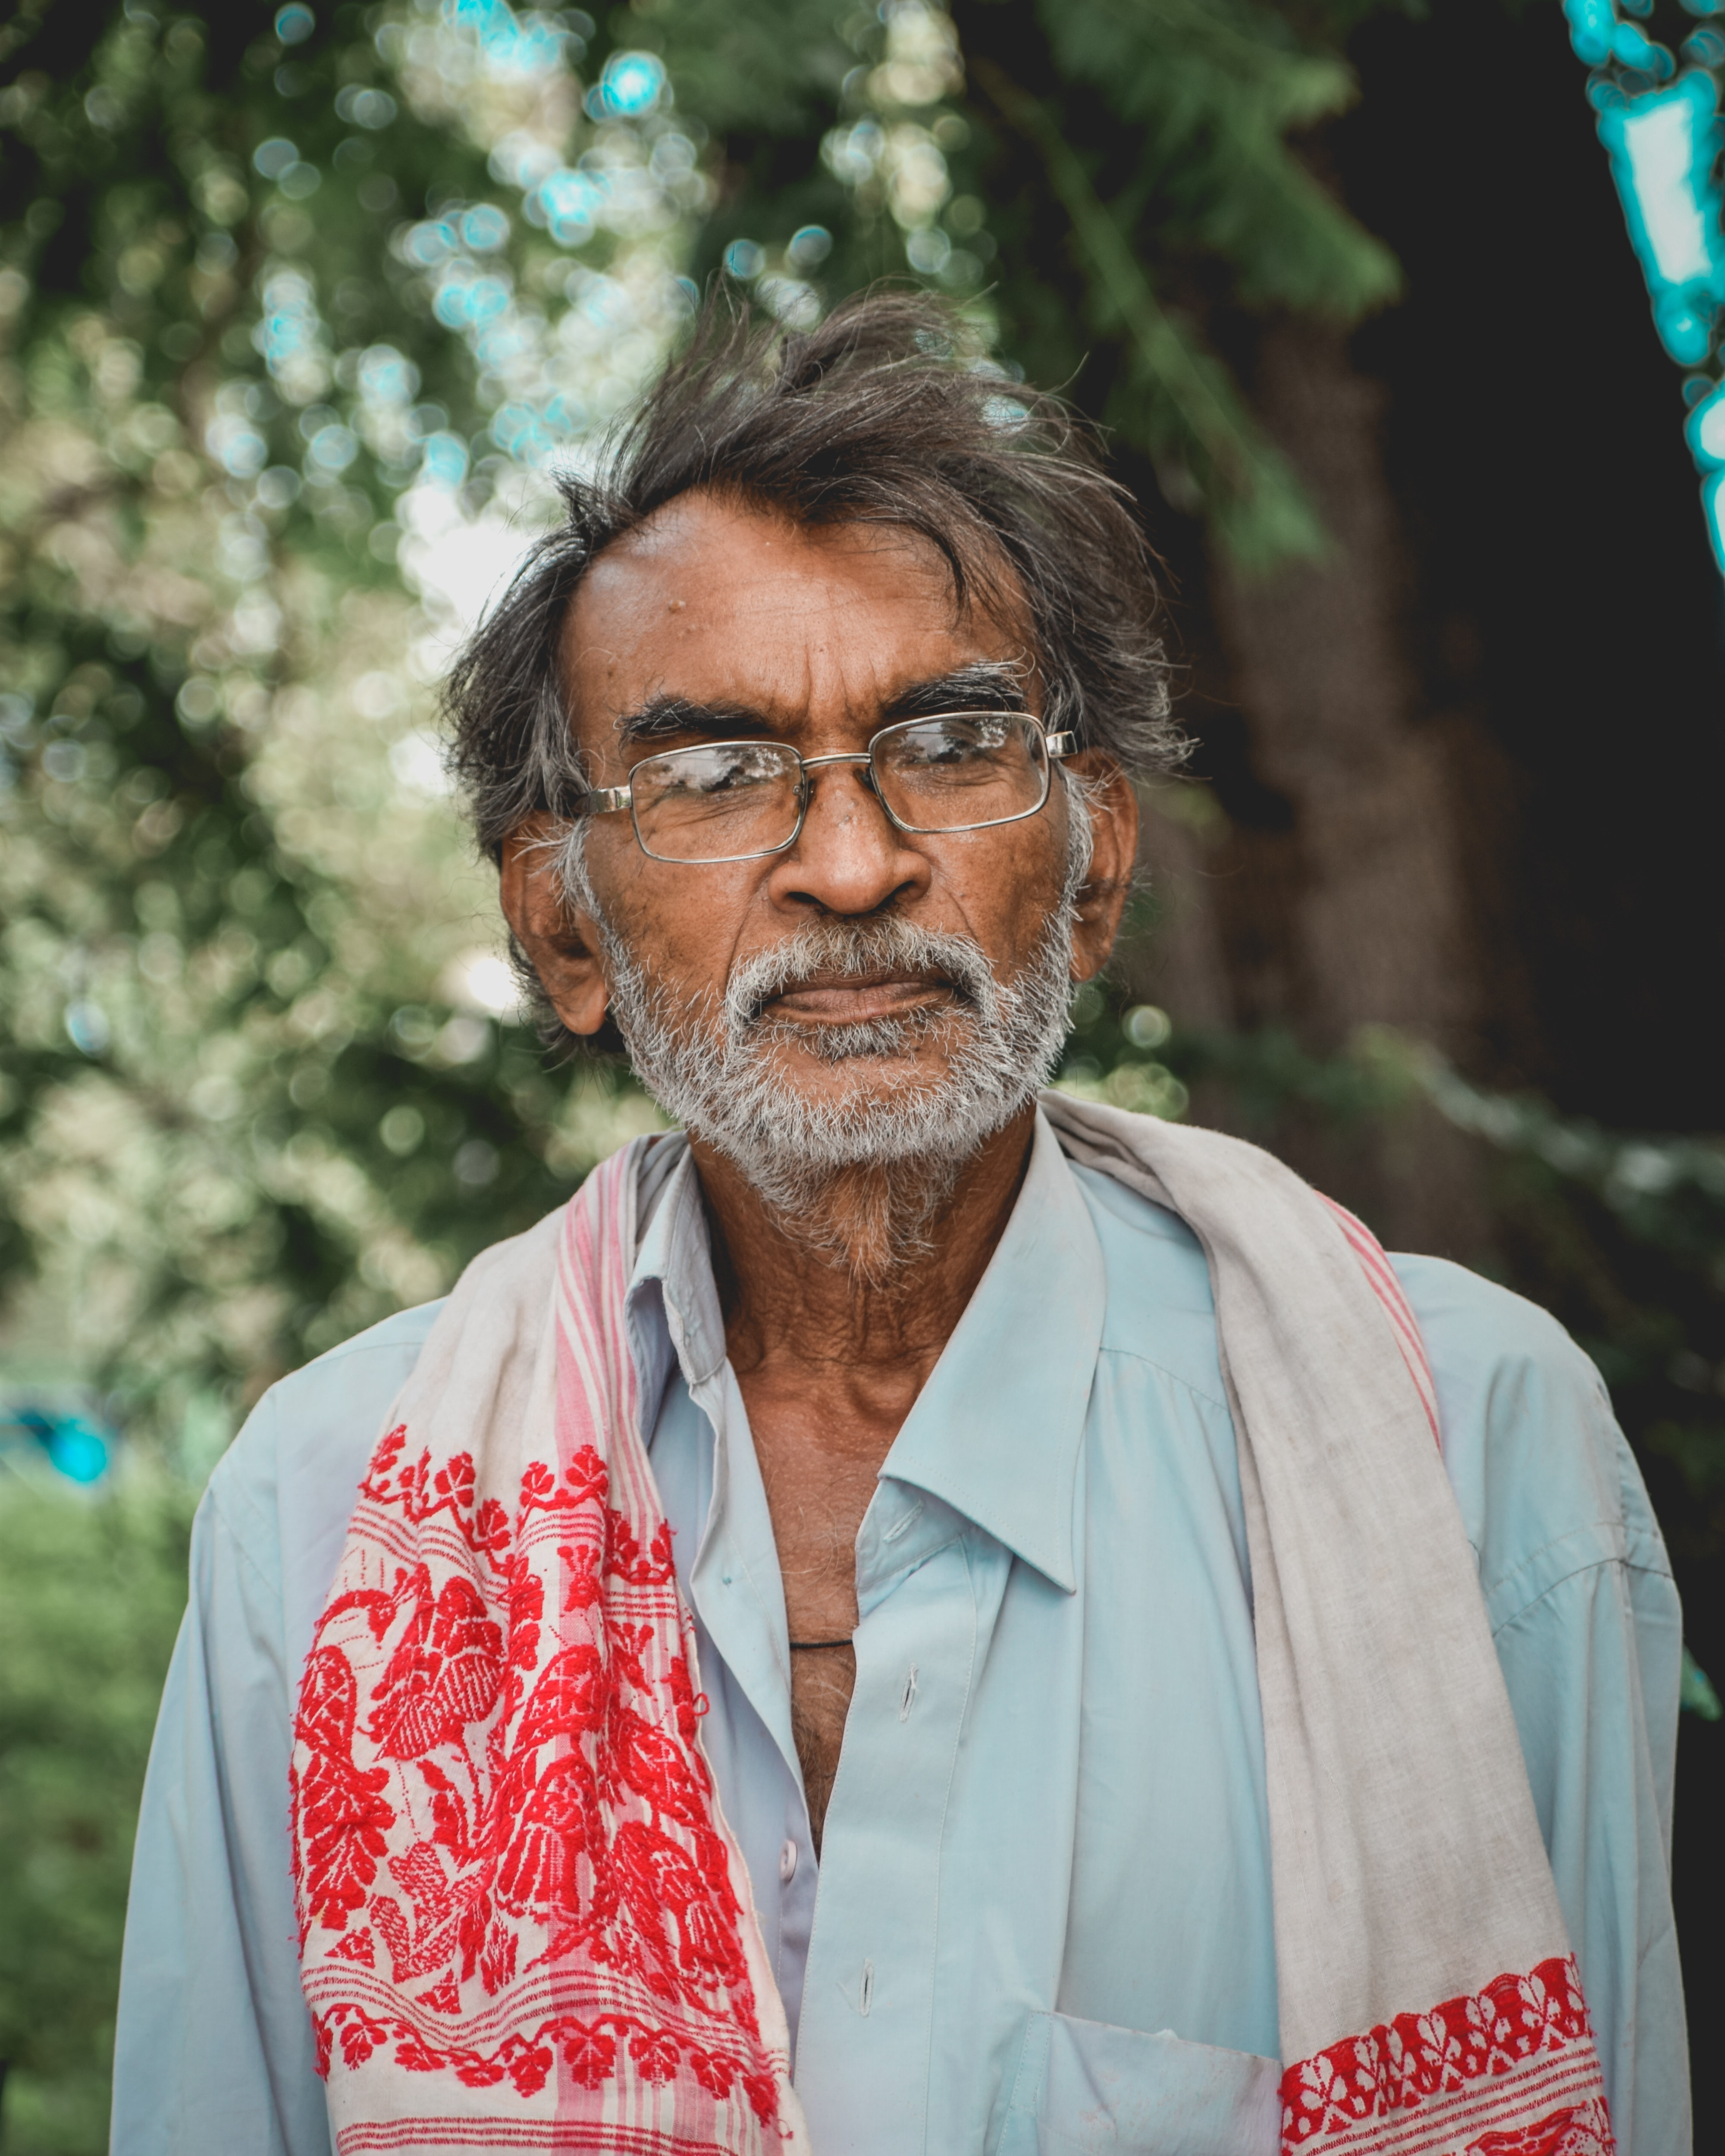 close-up photo of man in white and red floral scarf